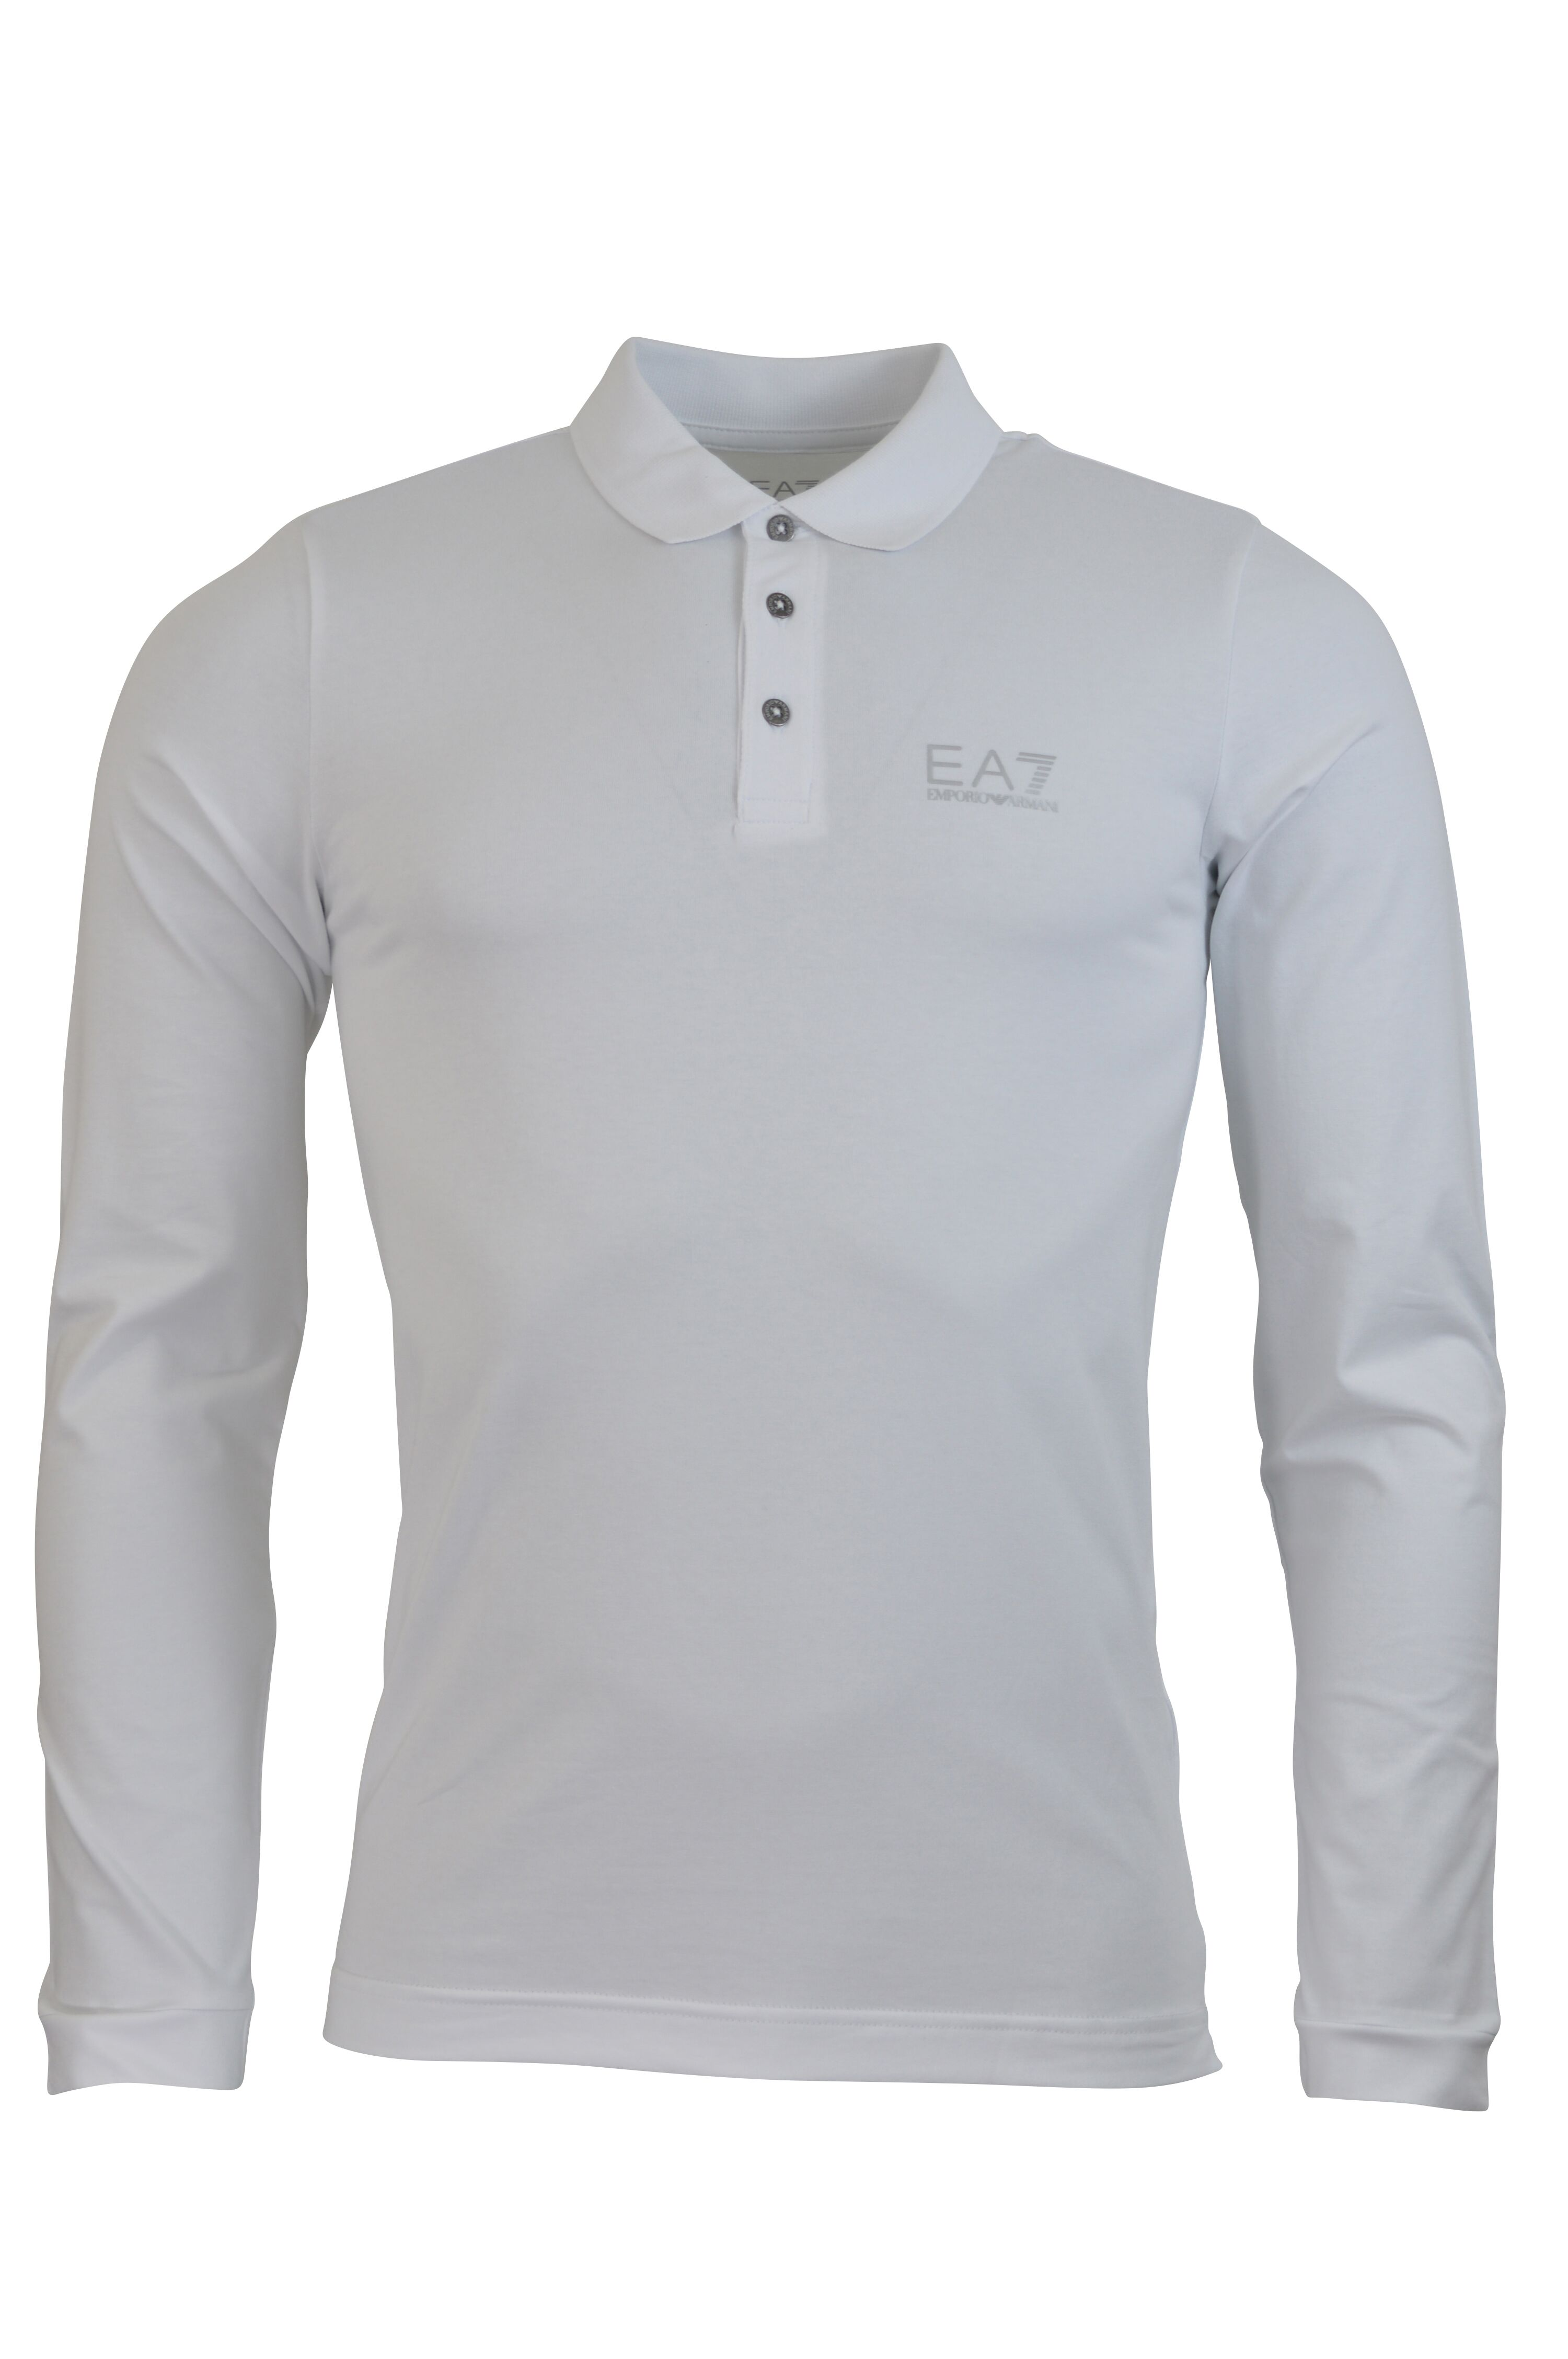 • Men's/Women's T-shirt/ Polo Shirt/ Hoodie/Sweater/Joggers/Coat/Jacket • (colour) • Short sleeves/Long Sleeves • Crew neck/V-Neck • Printed/Embroidered (Product Brand) logo on (Place of logo), in (Colour of logo) • 100% Cotton • Machine Wash